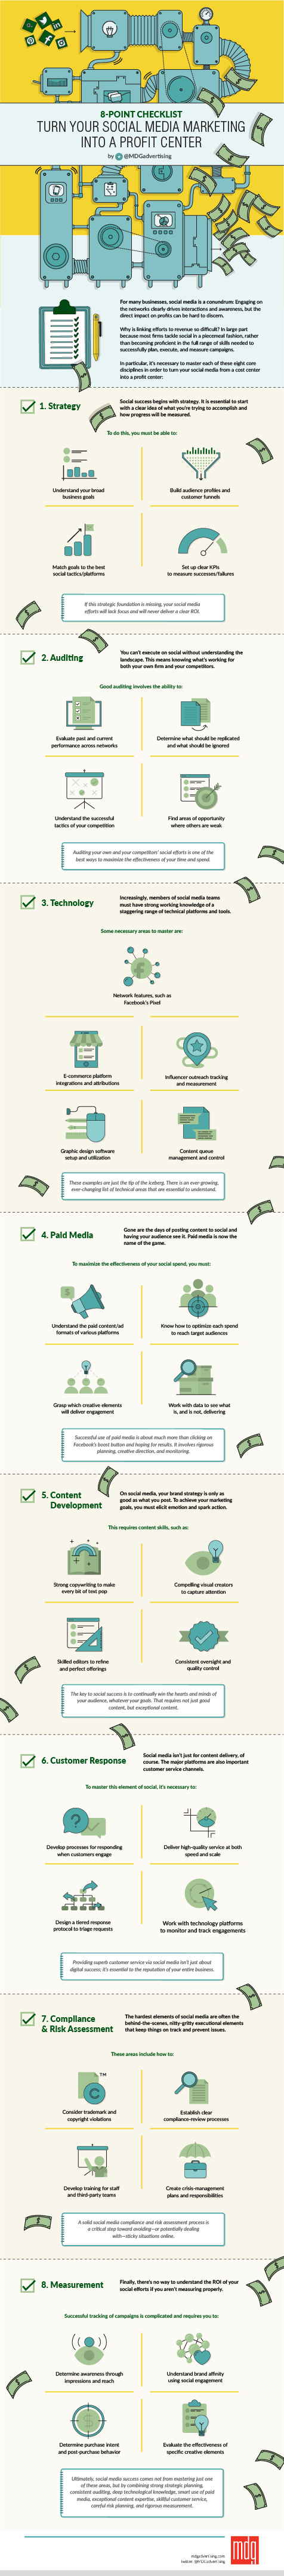 8 Point Checklist Infographic 475px